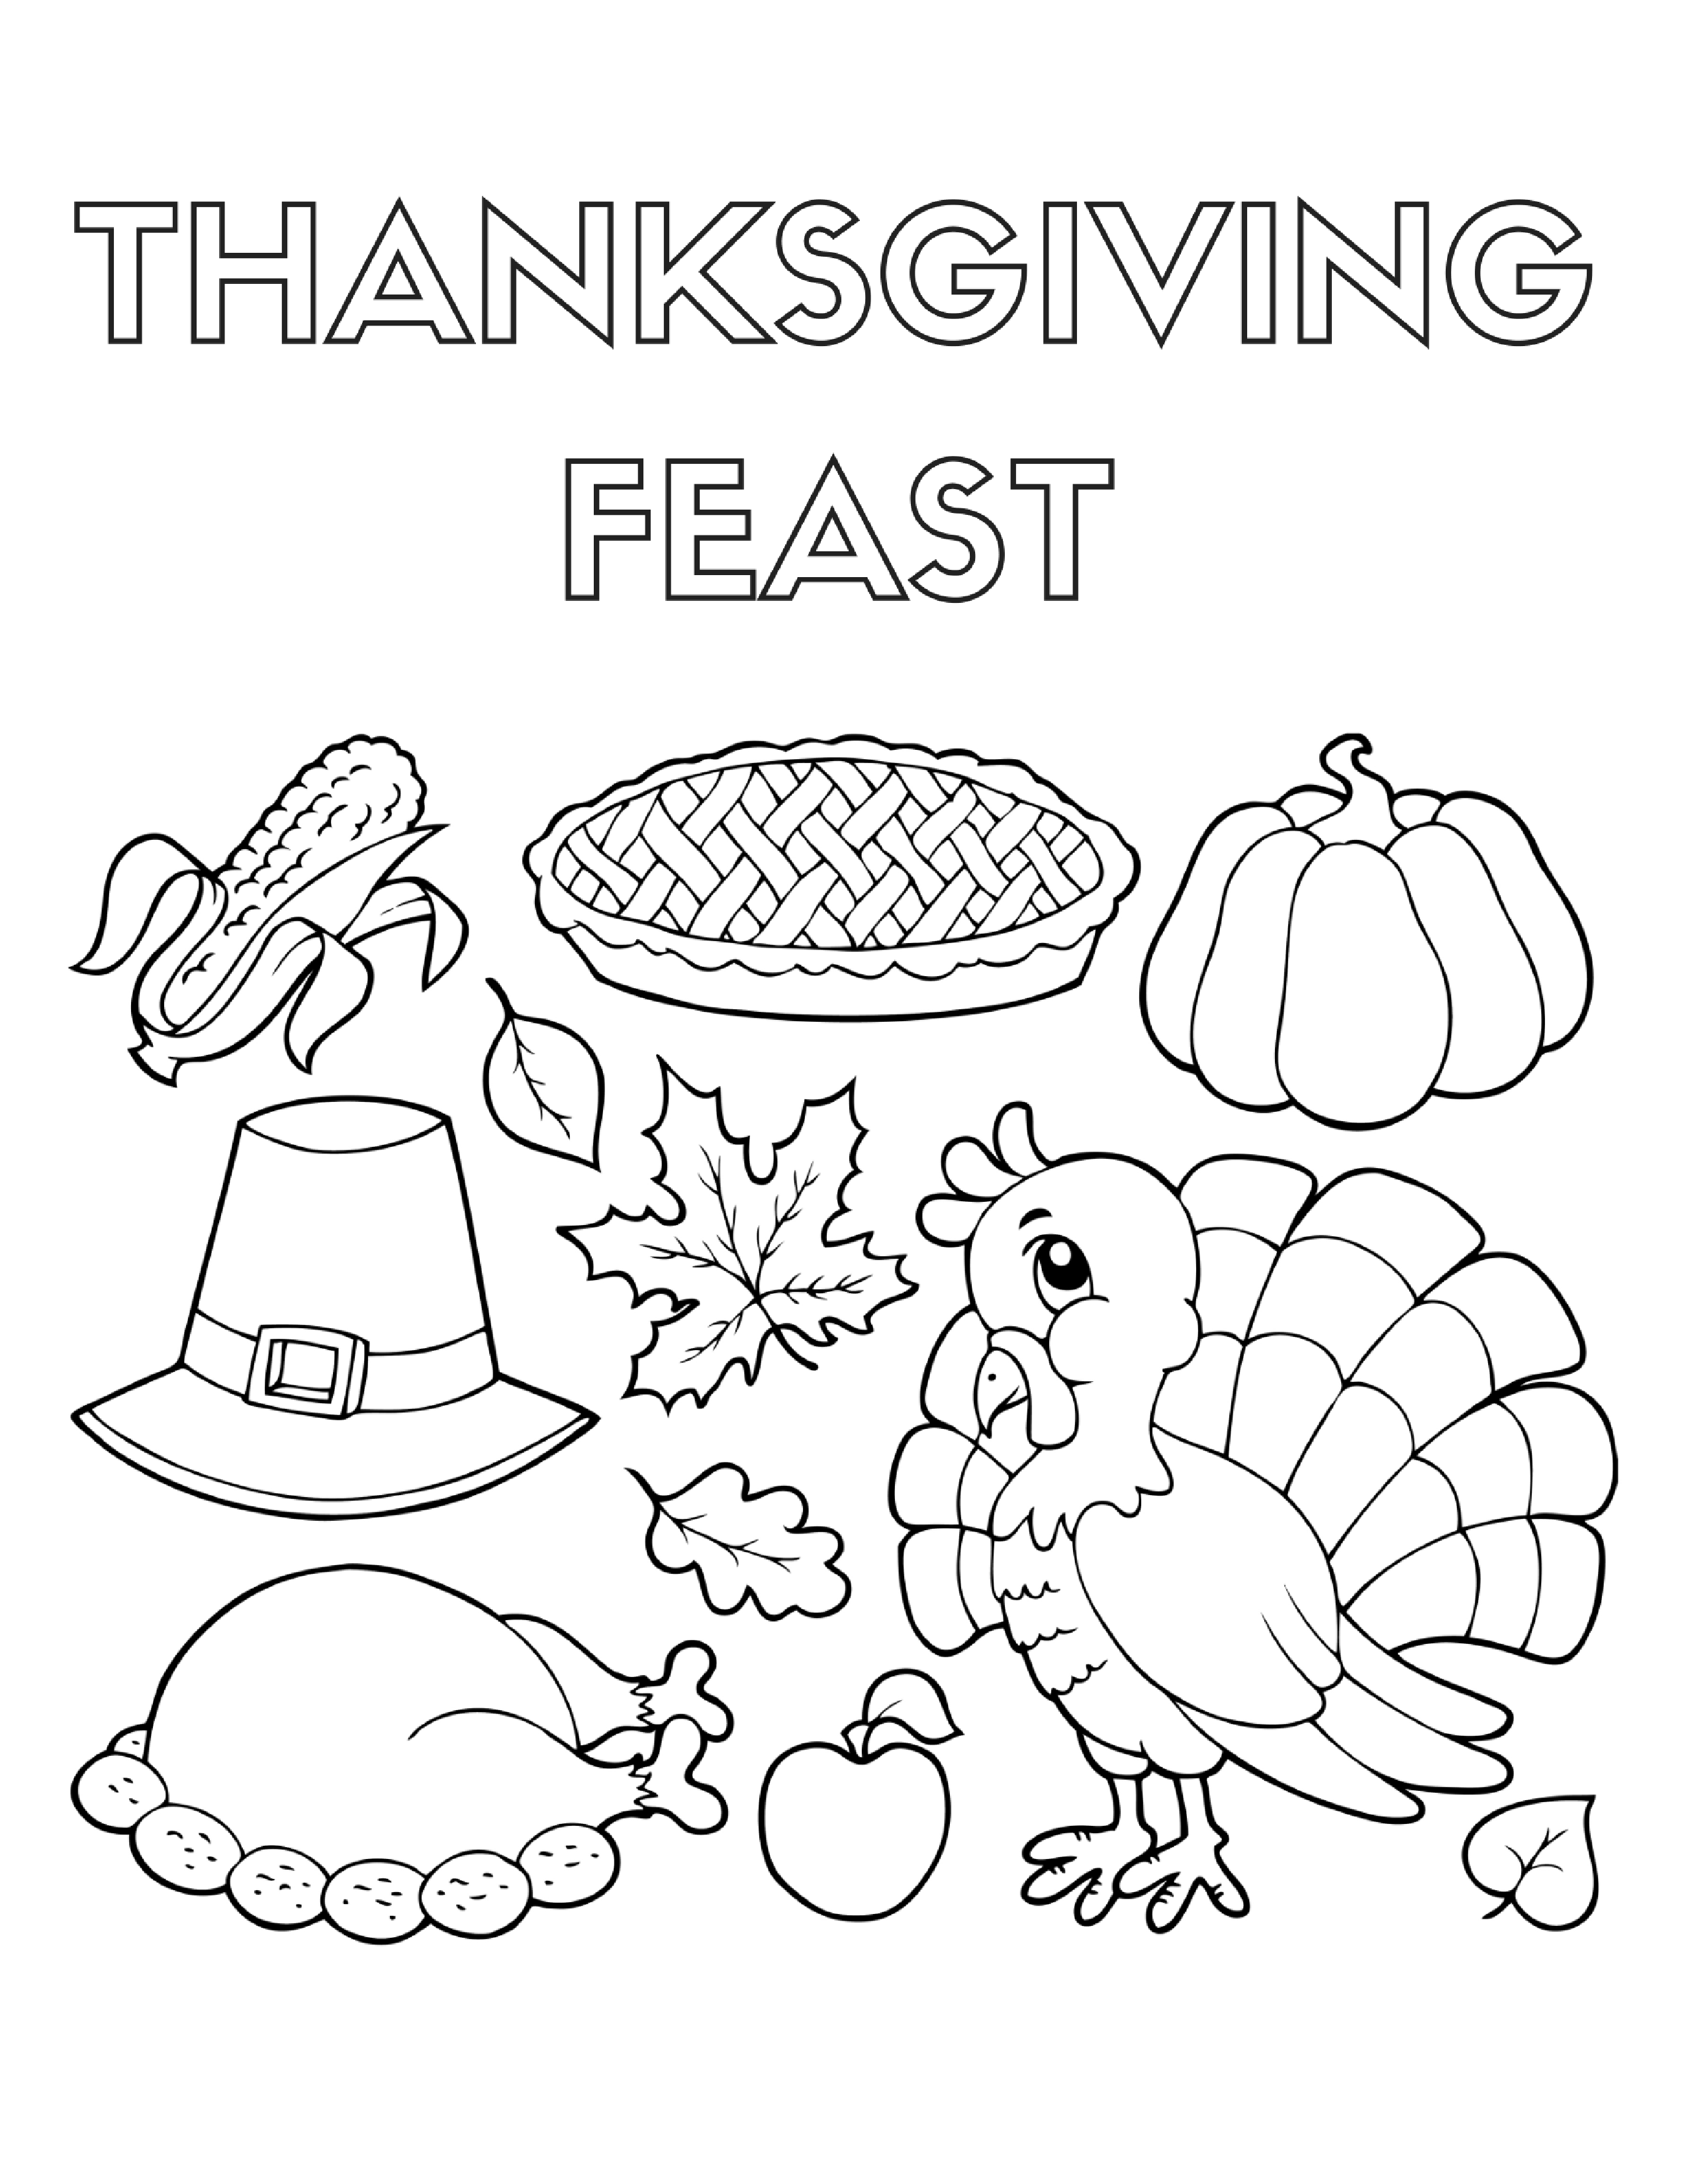 Thanksgiving Color Pages--check out these cute coloring sheets